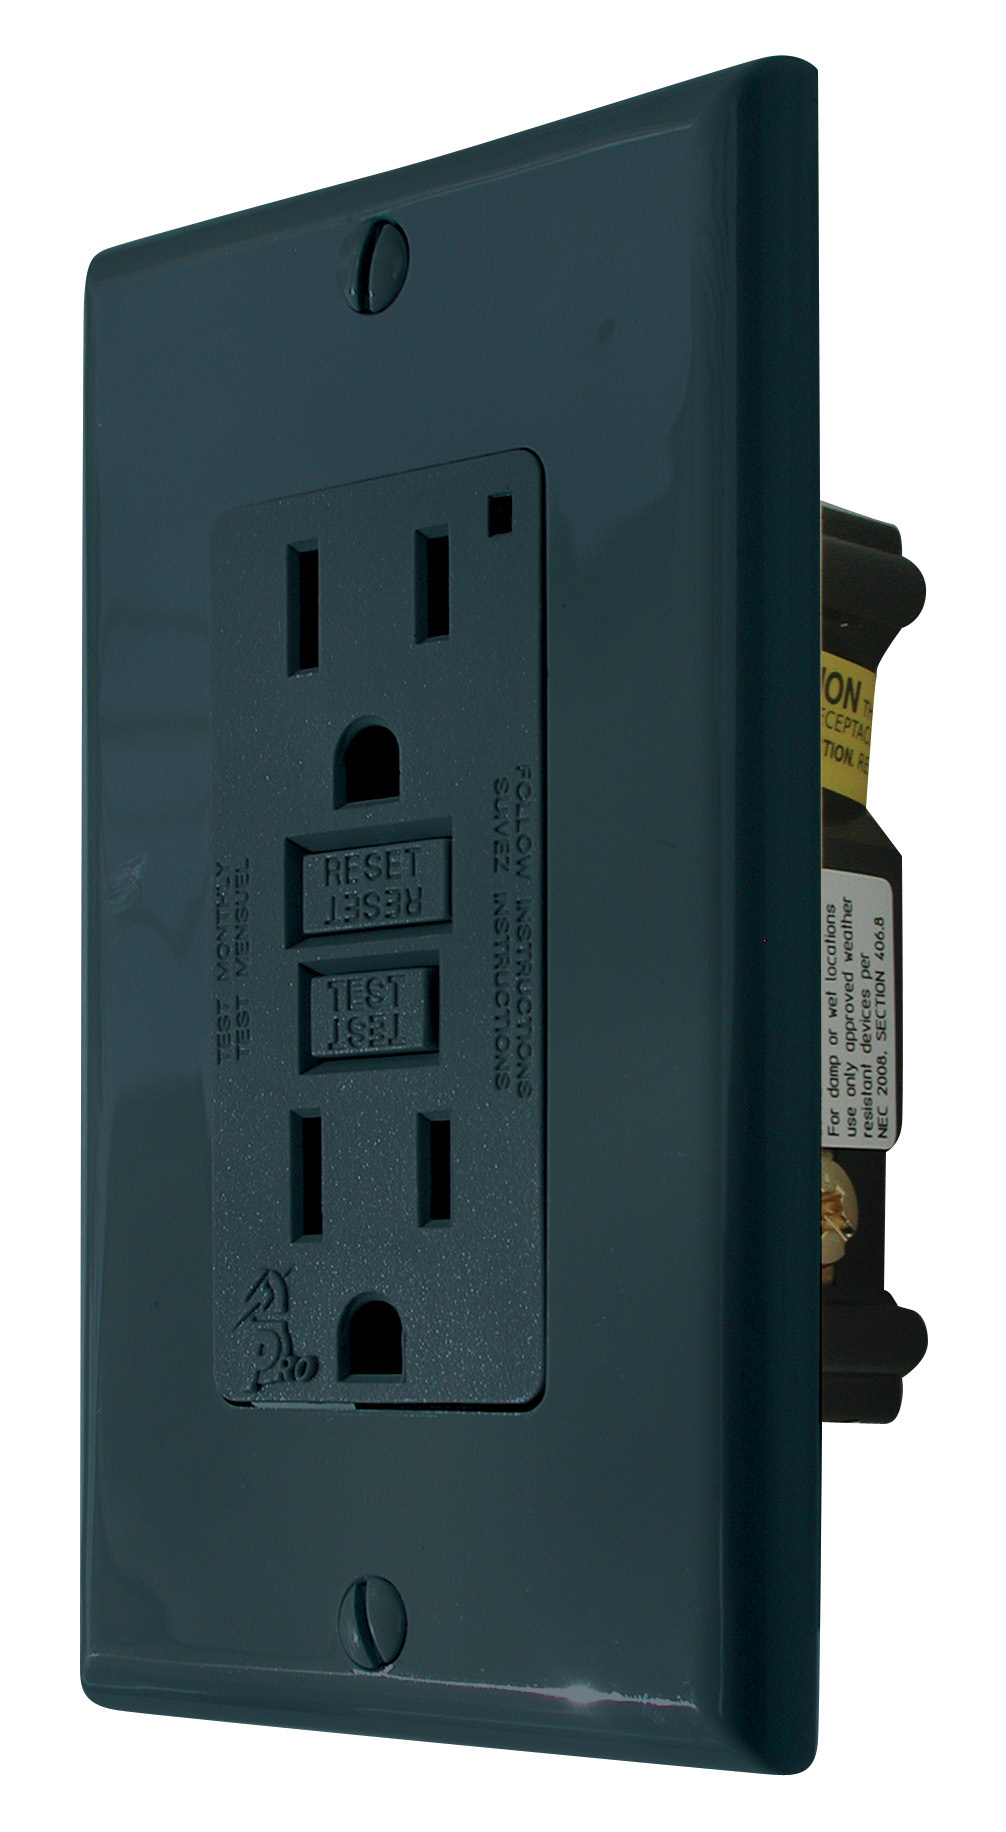 GFI Receptacle - Black VGF15BK